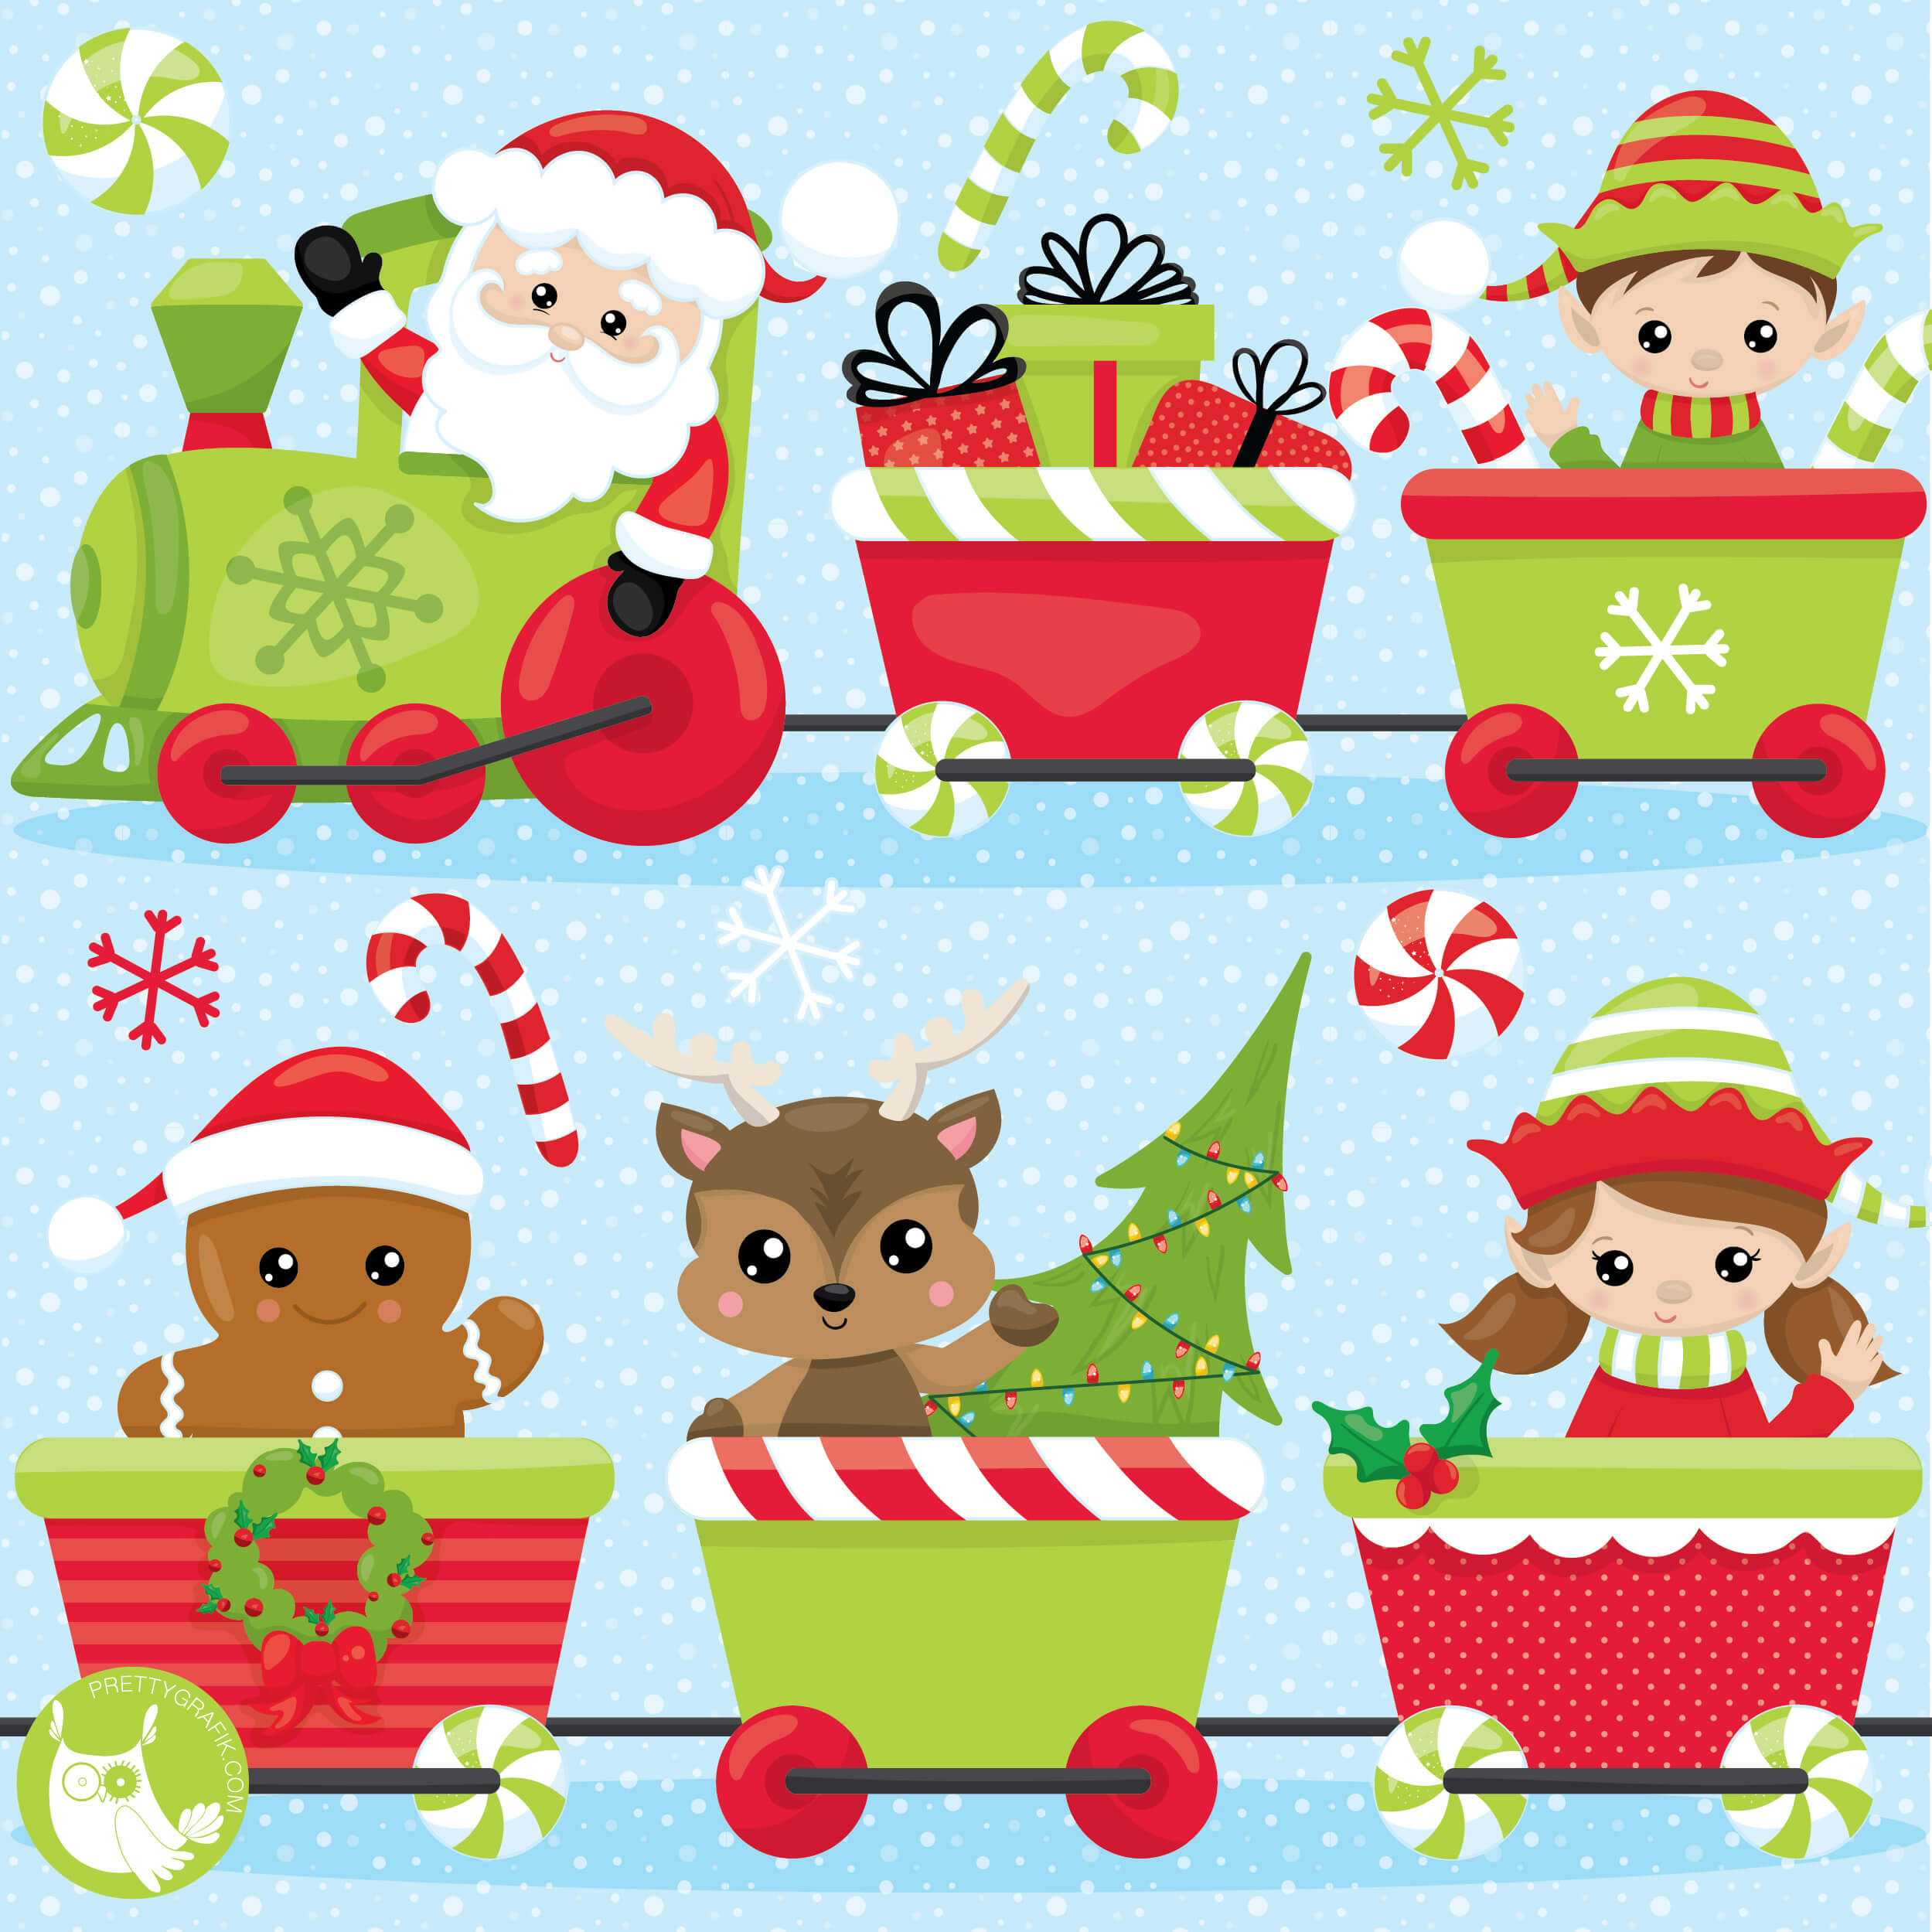 Christmas Party Images Clip Art.Christmas Party Train Clipart